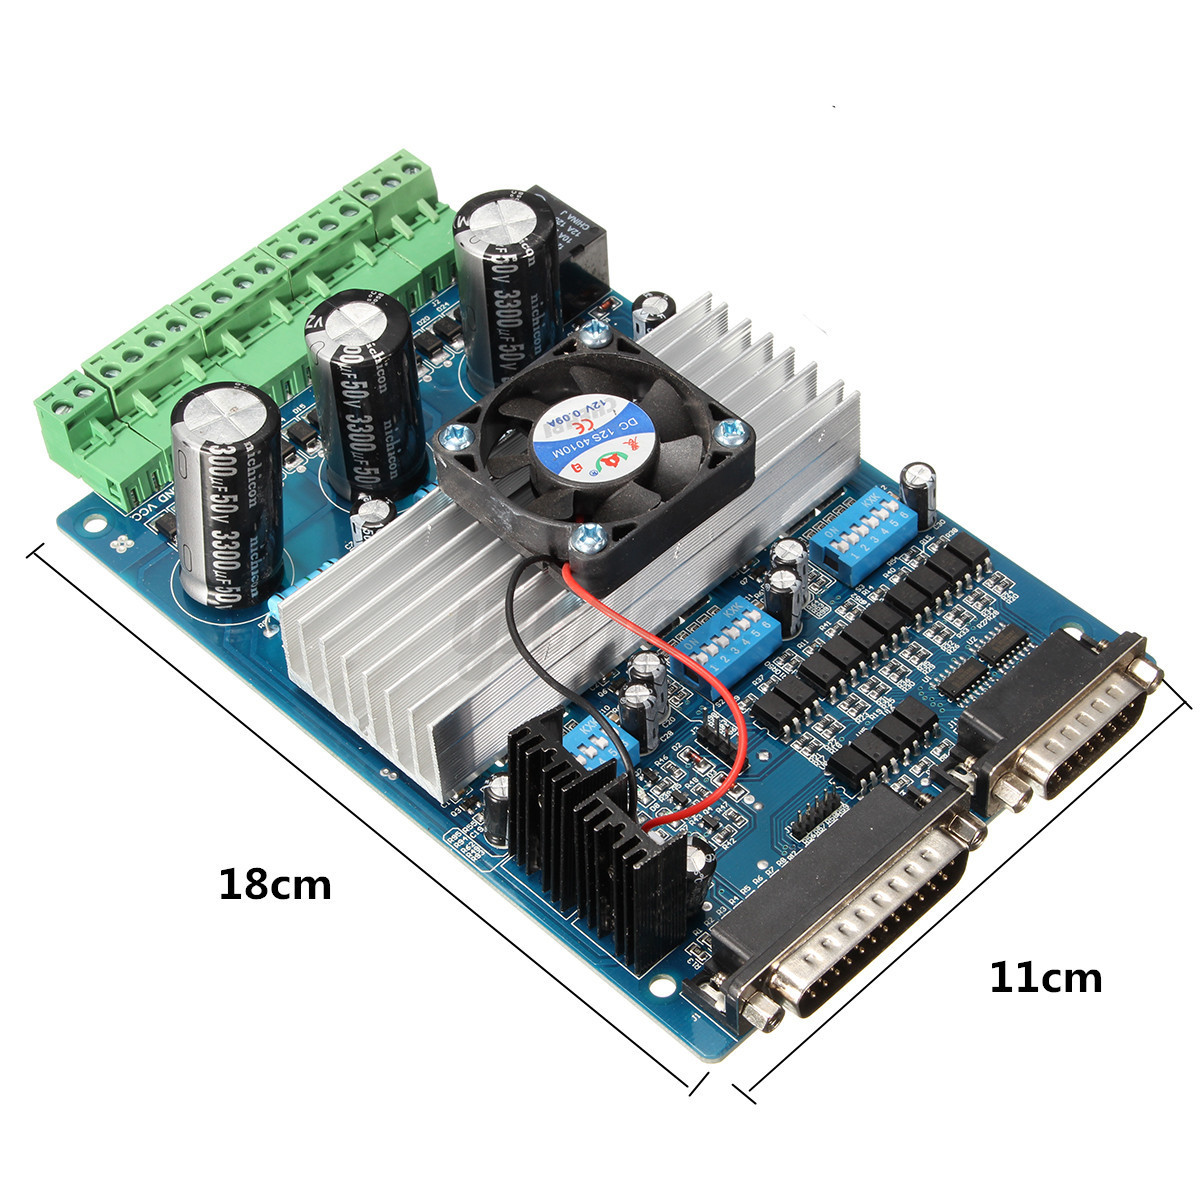 Cnc 3 axis tb6560 stepper motor driver controller board for Stepping motors and their microprocessor controls